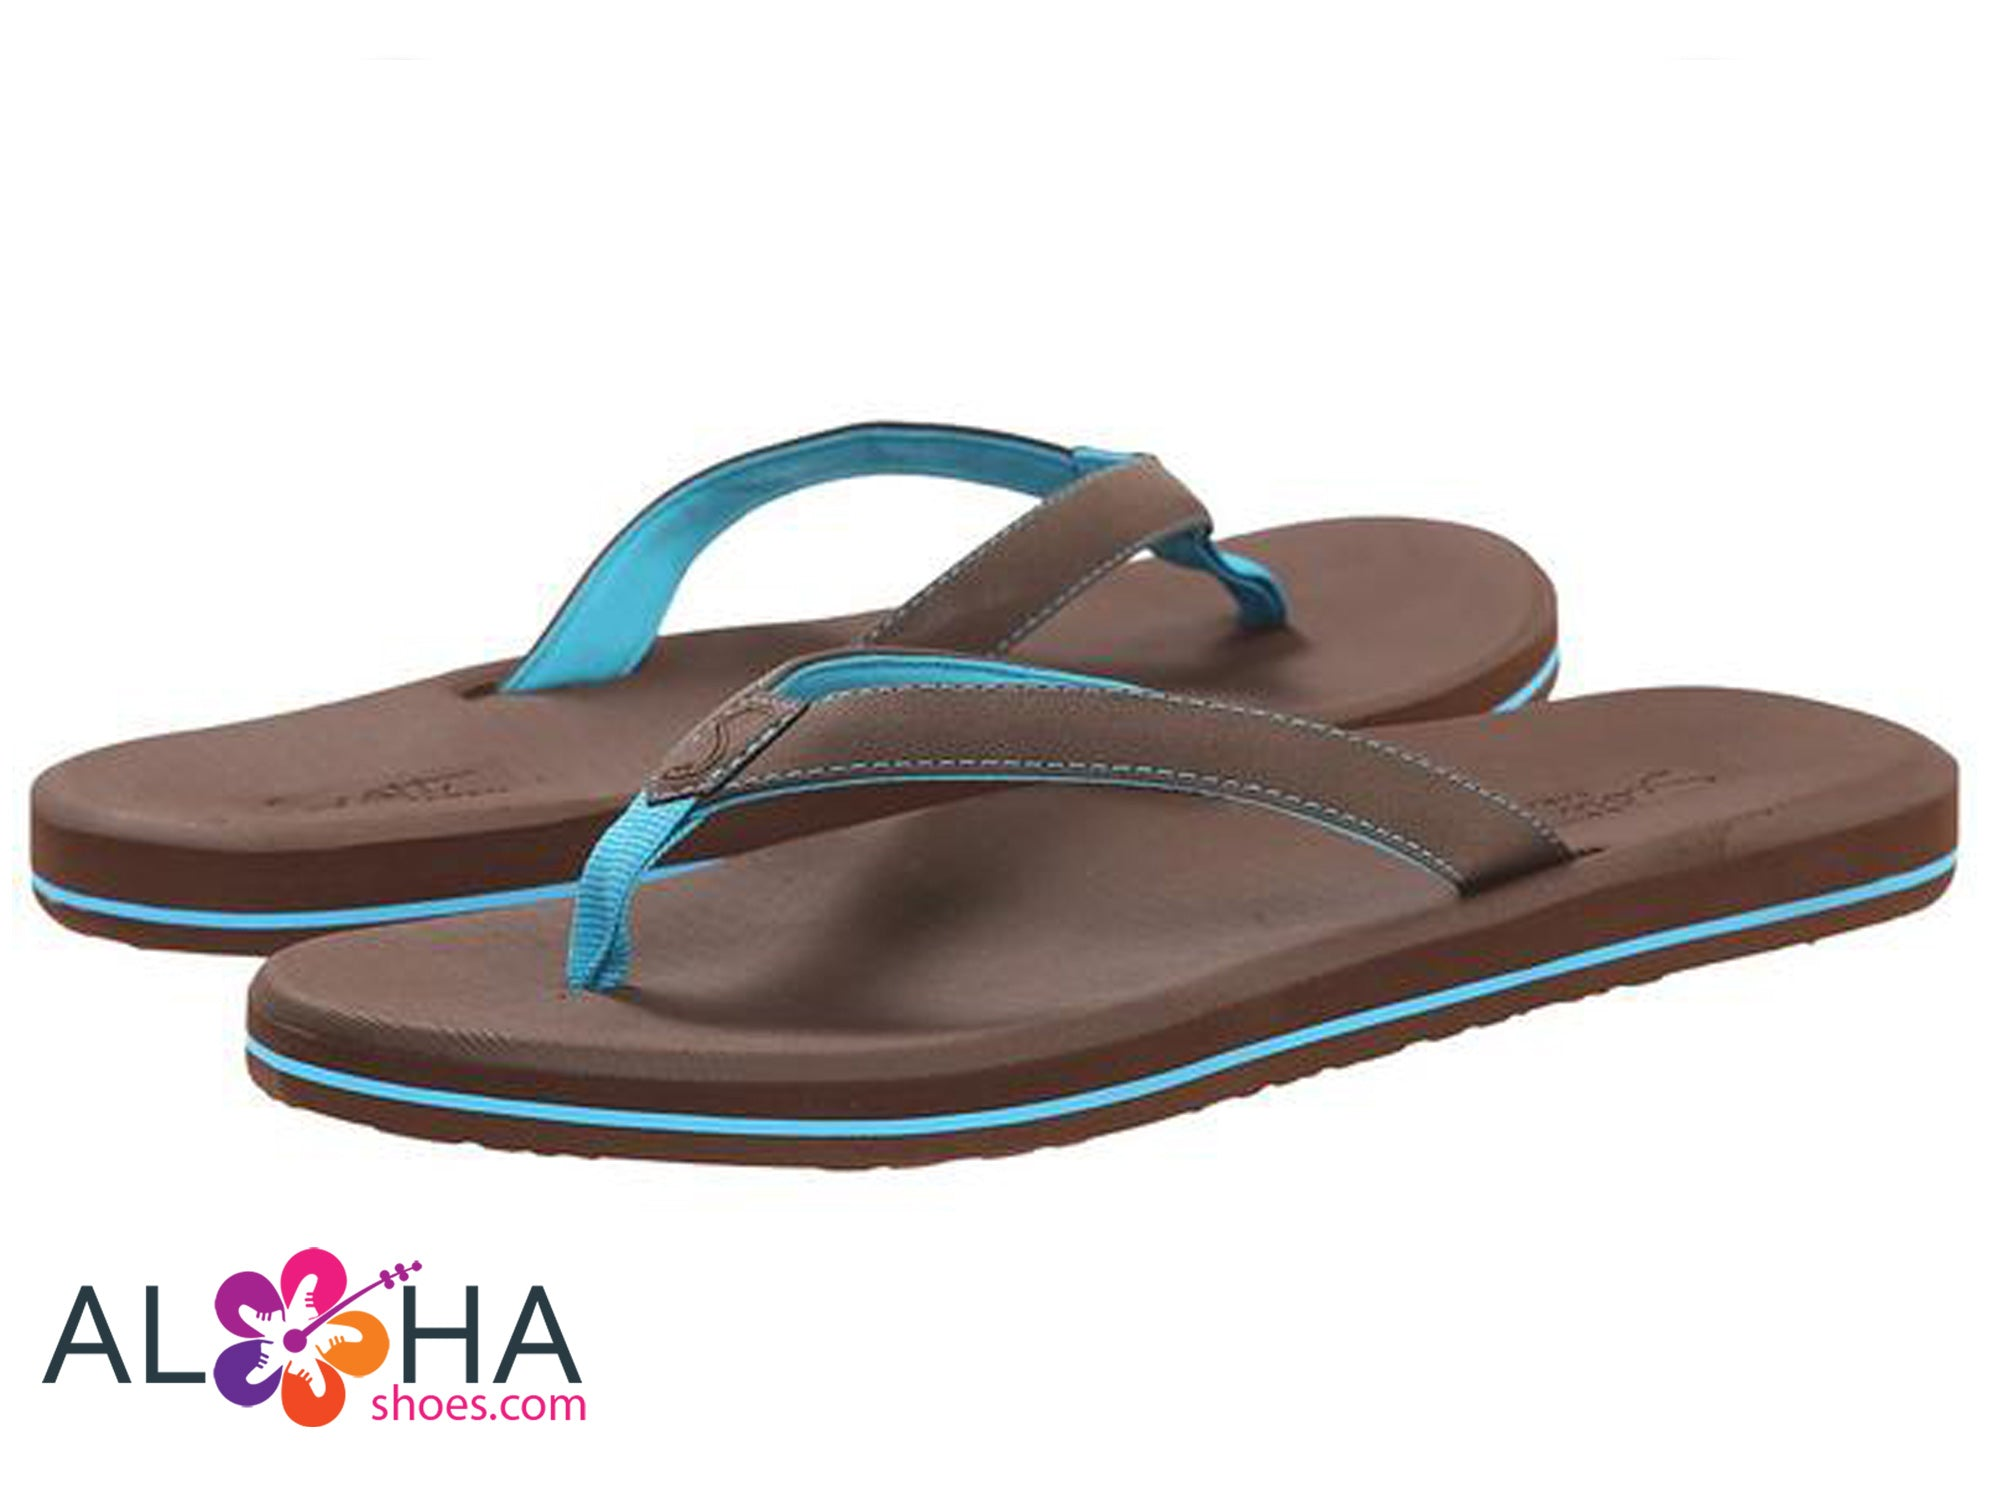 Scott Women's Size 11 Olena Flip Flops | Pinstripe Turquoise Slippers - AlohaShoes.com